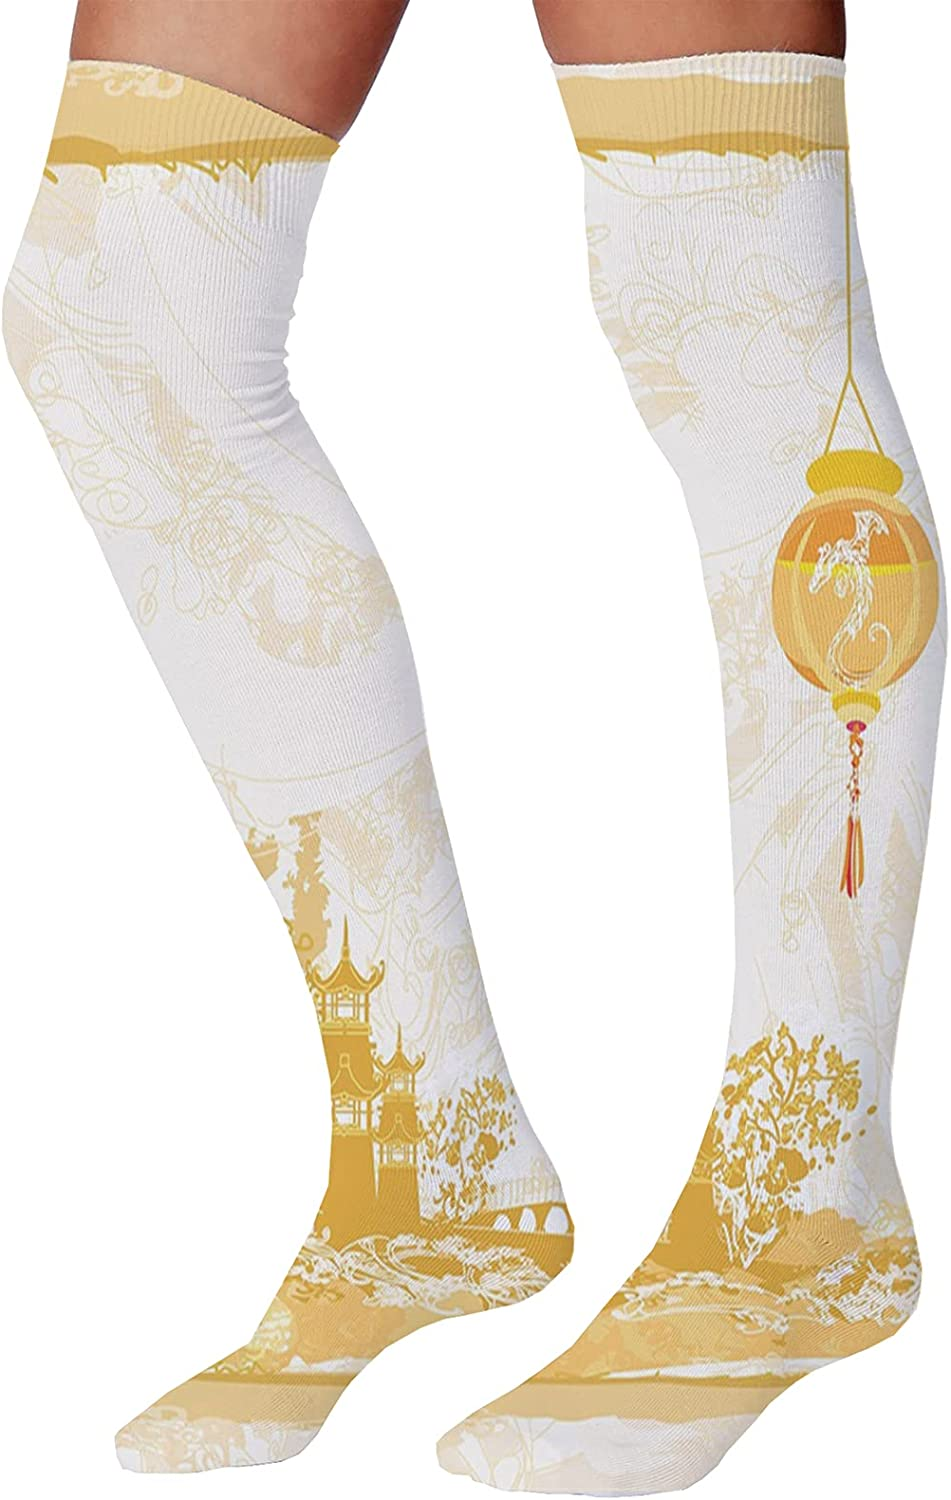 Men's and Women's Fun Socks,Old Middle Age Tower by The Sea Renaissance Buildings Dreamy Princess Print